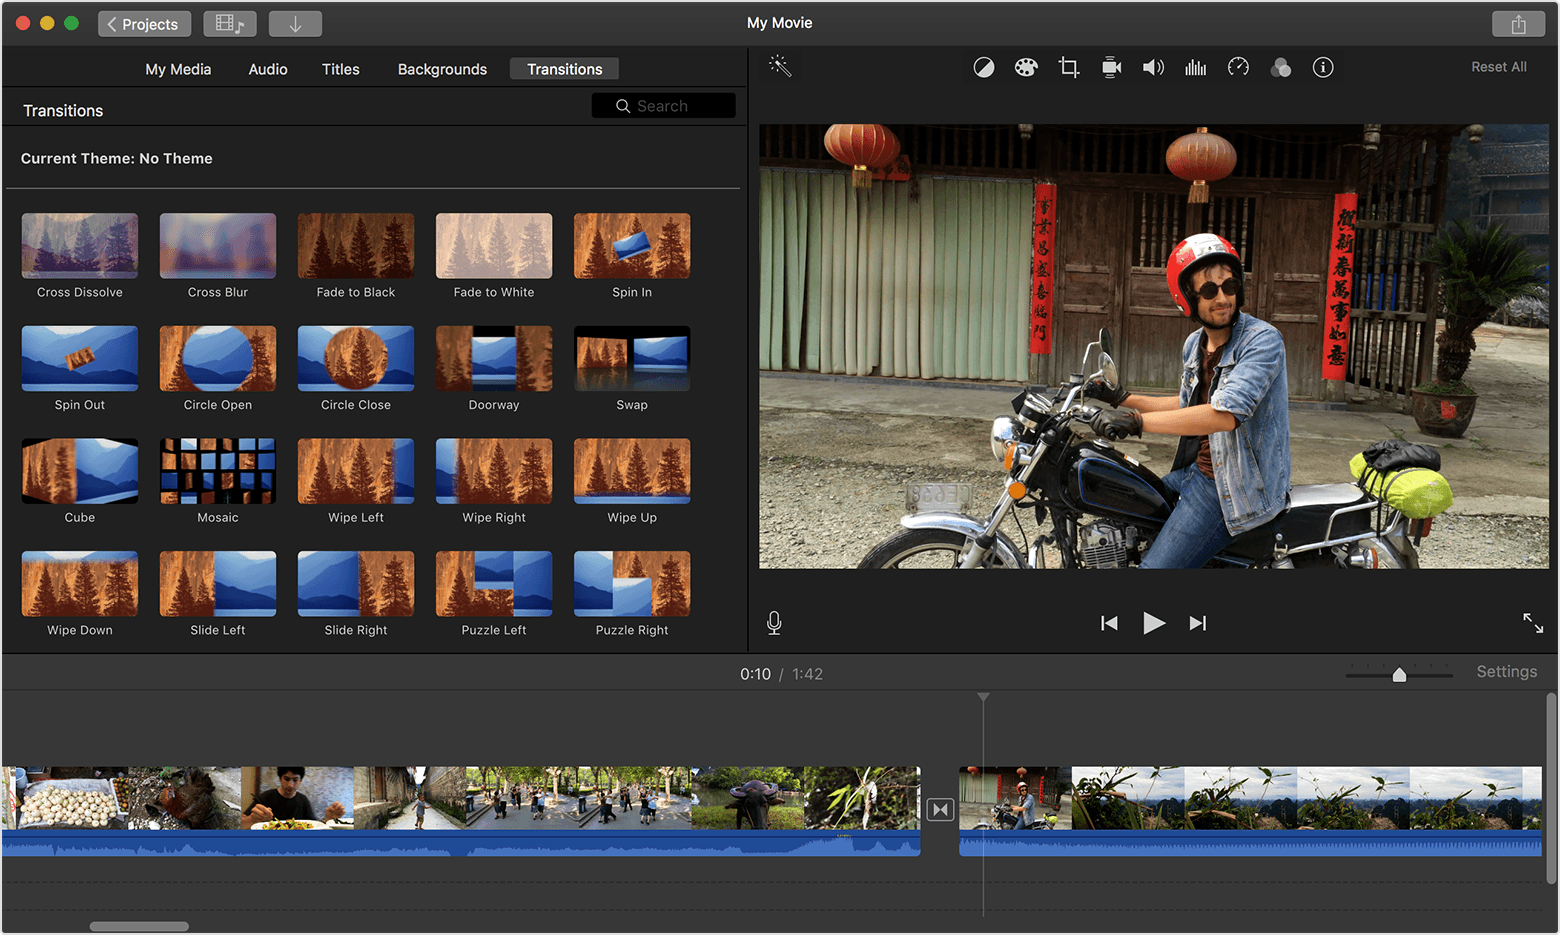 Printscreen of the iMovie's interface